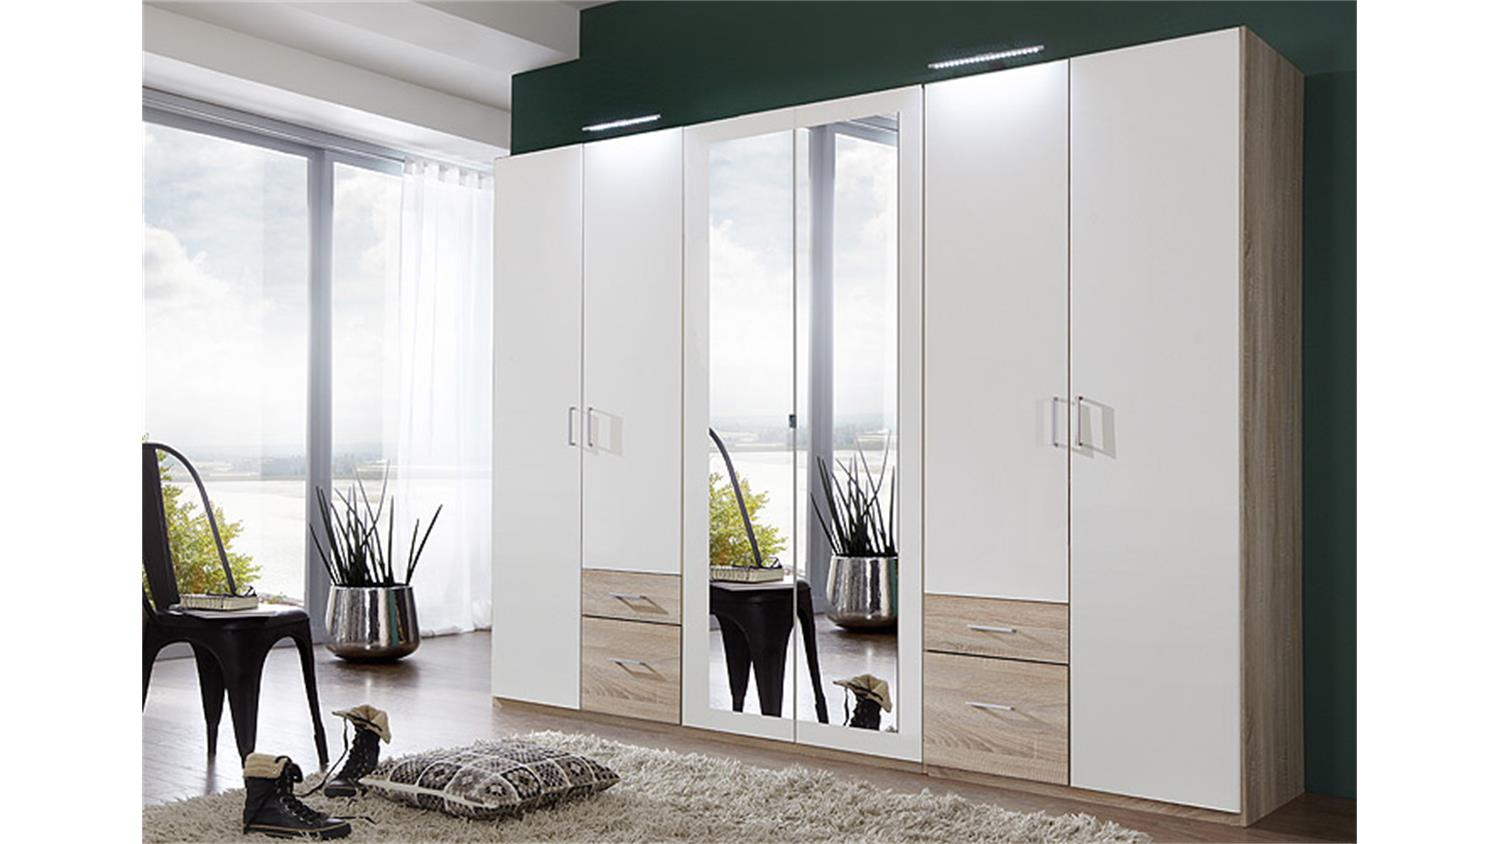 kleiderschrank freiburg front wei korpus eiche s gerau spiegel b 270 cm. Black Bedroom Furniture Sets. Home Design Ideas